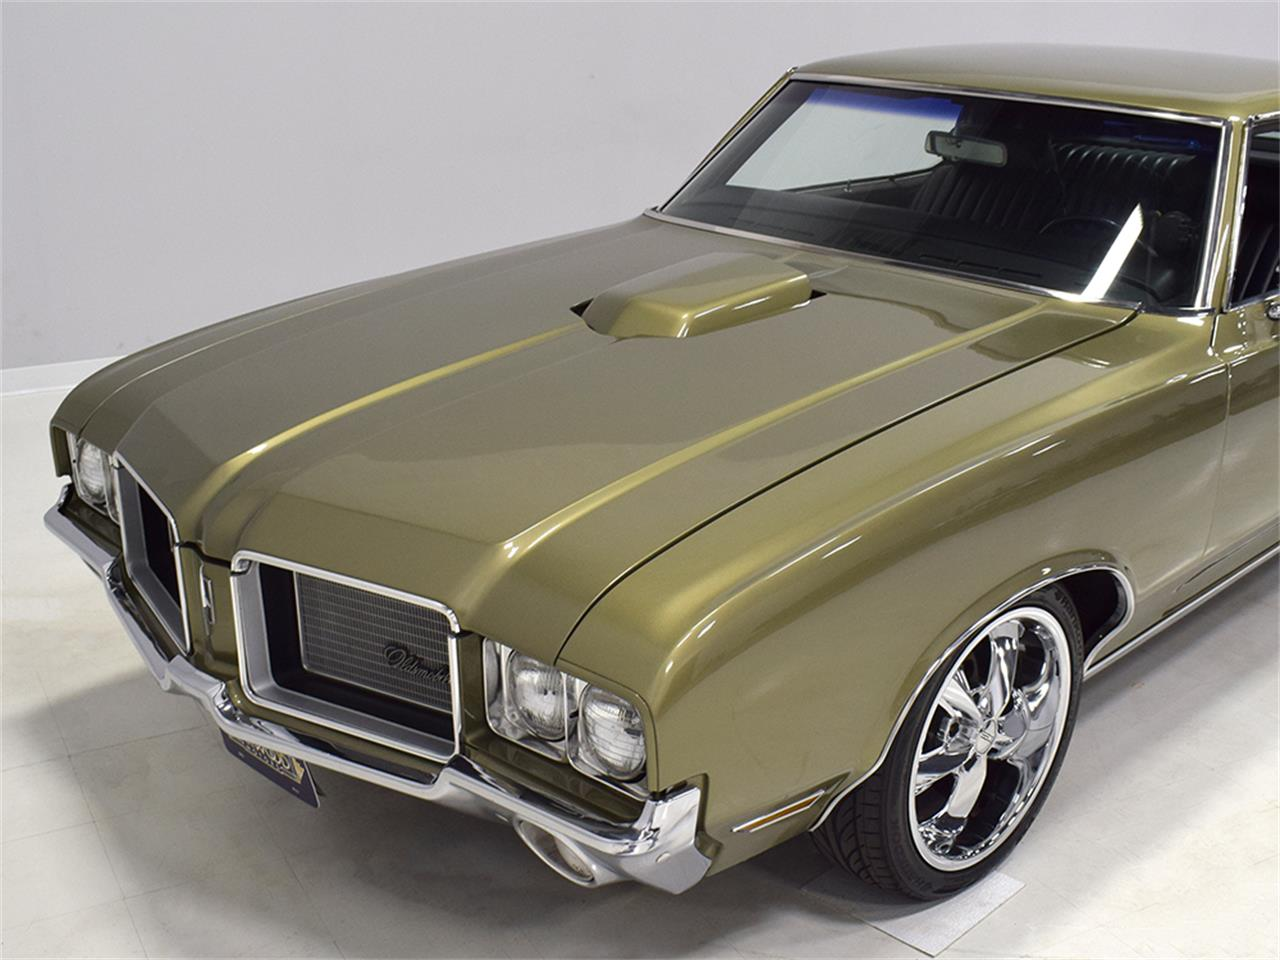 1971 Oldsmobile Cutlass Supreme for sale in Macedonia, OH – photo 10